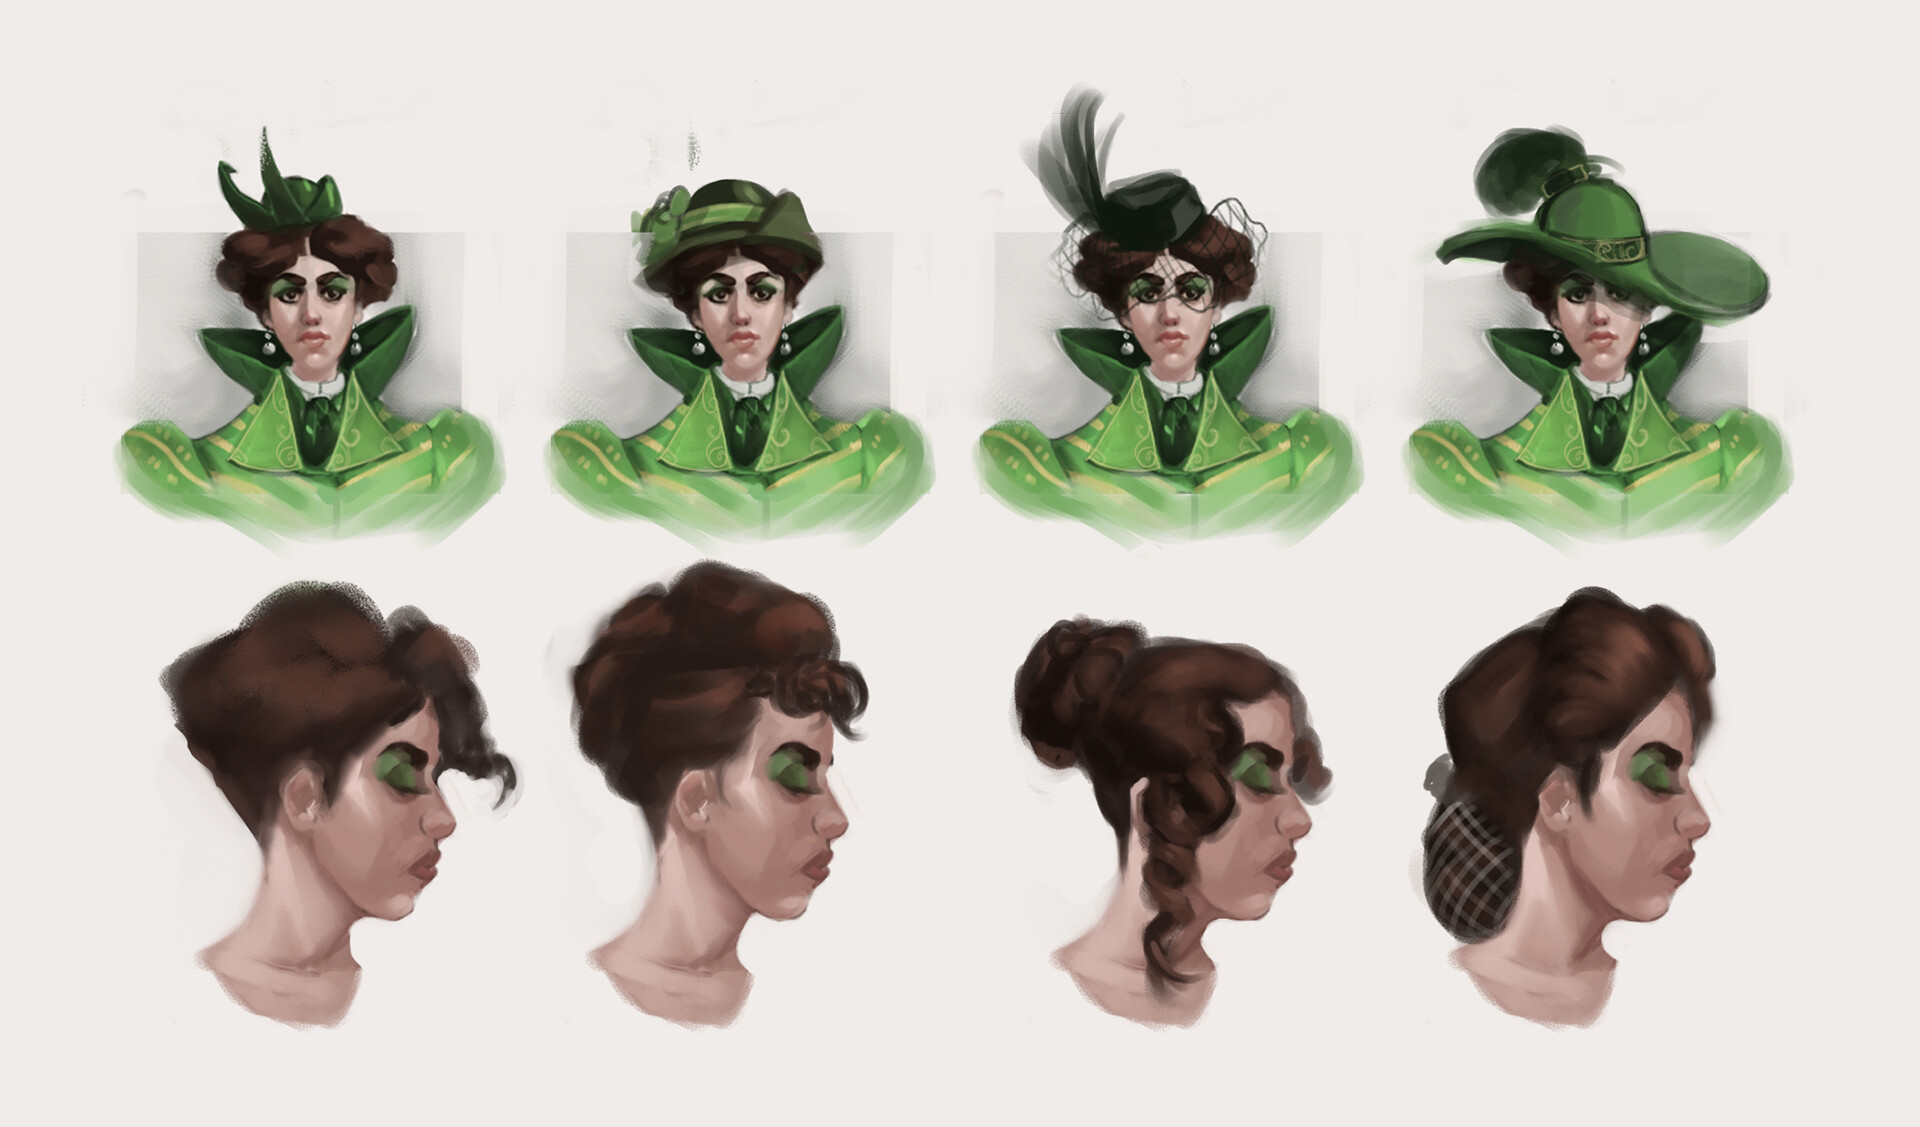 Hat and hair variants